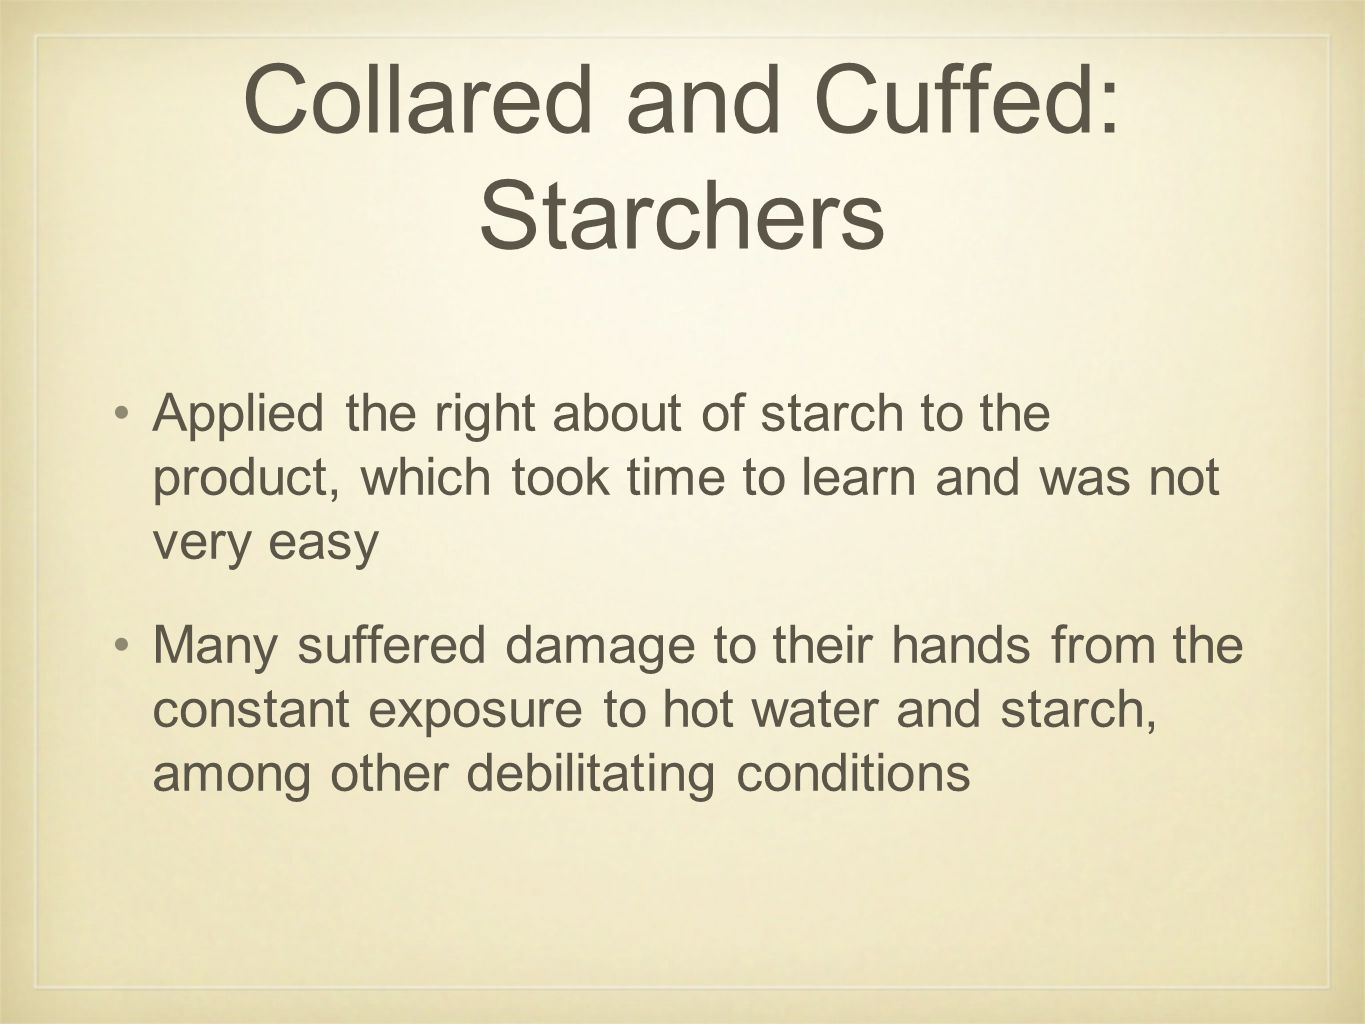 Collared and Cuffed: Starchers Applied the right about of starch to the product, which took time to learn and was not very easy Many suffered damage t